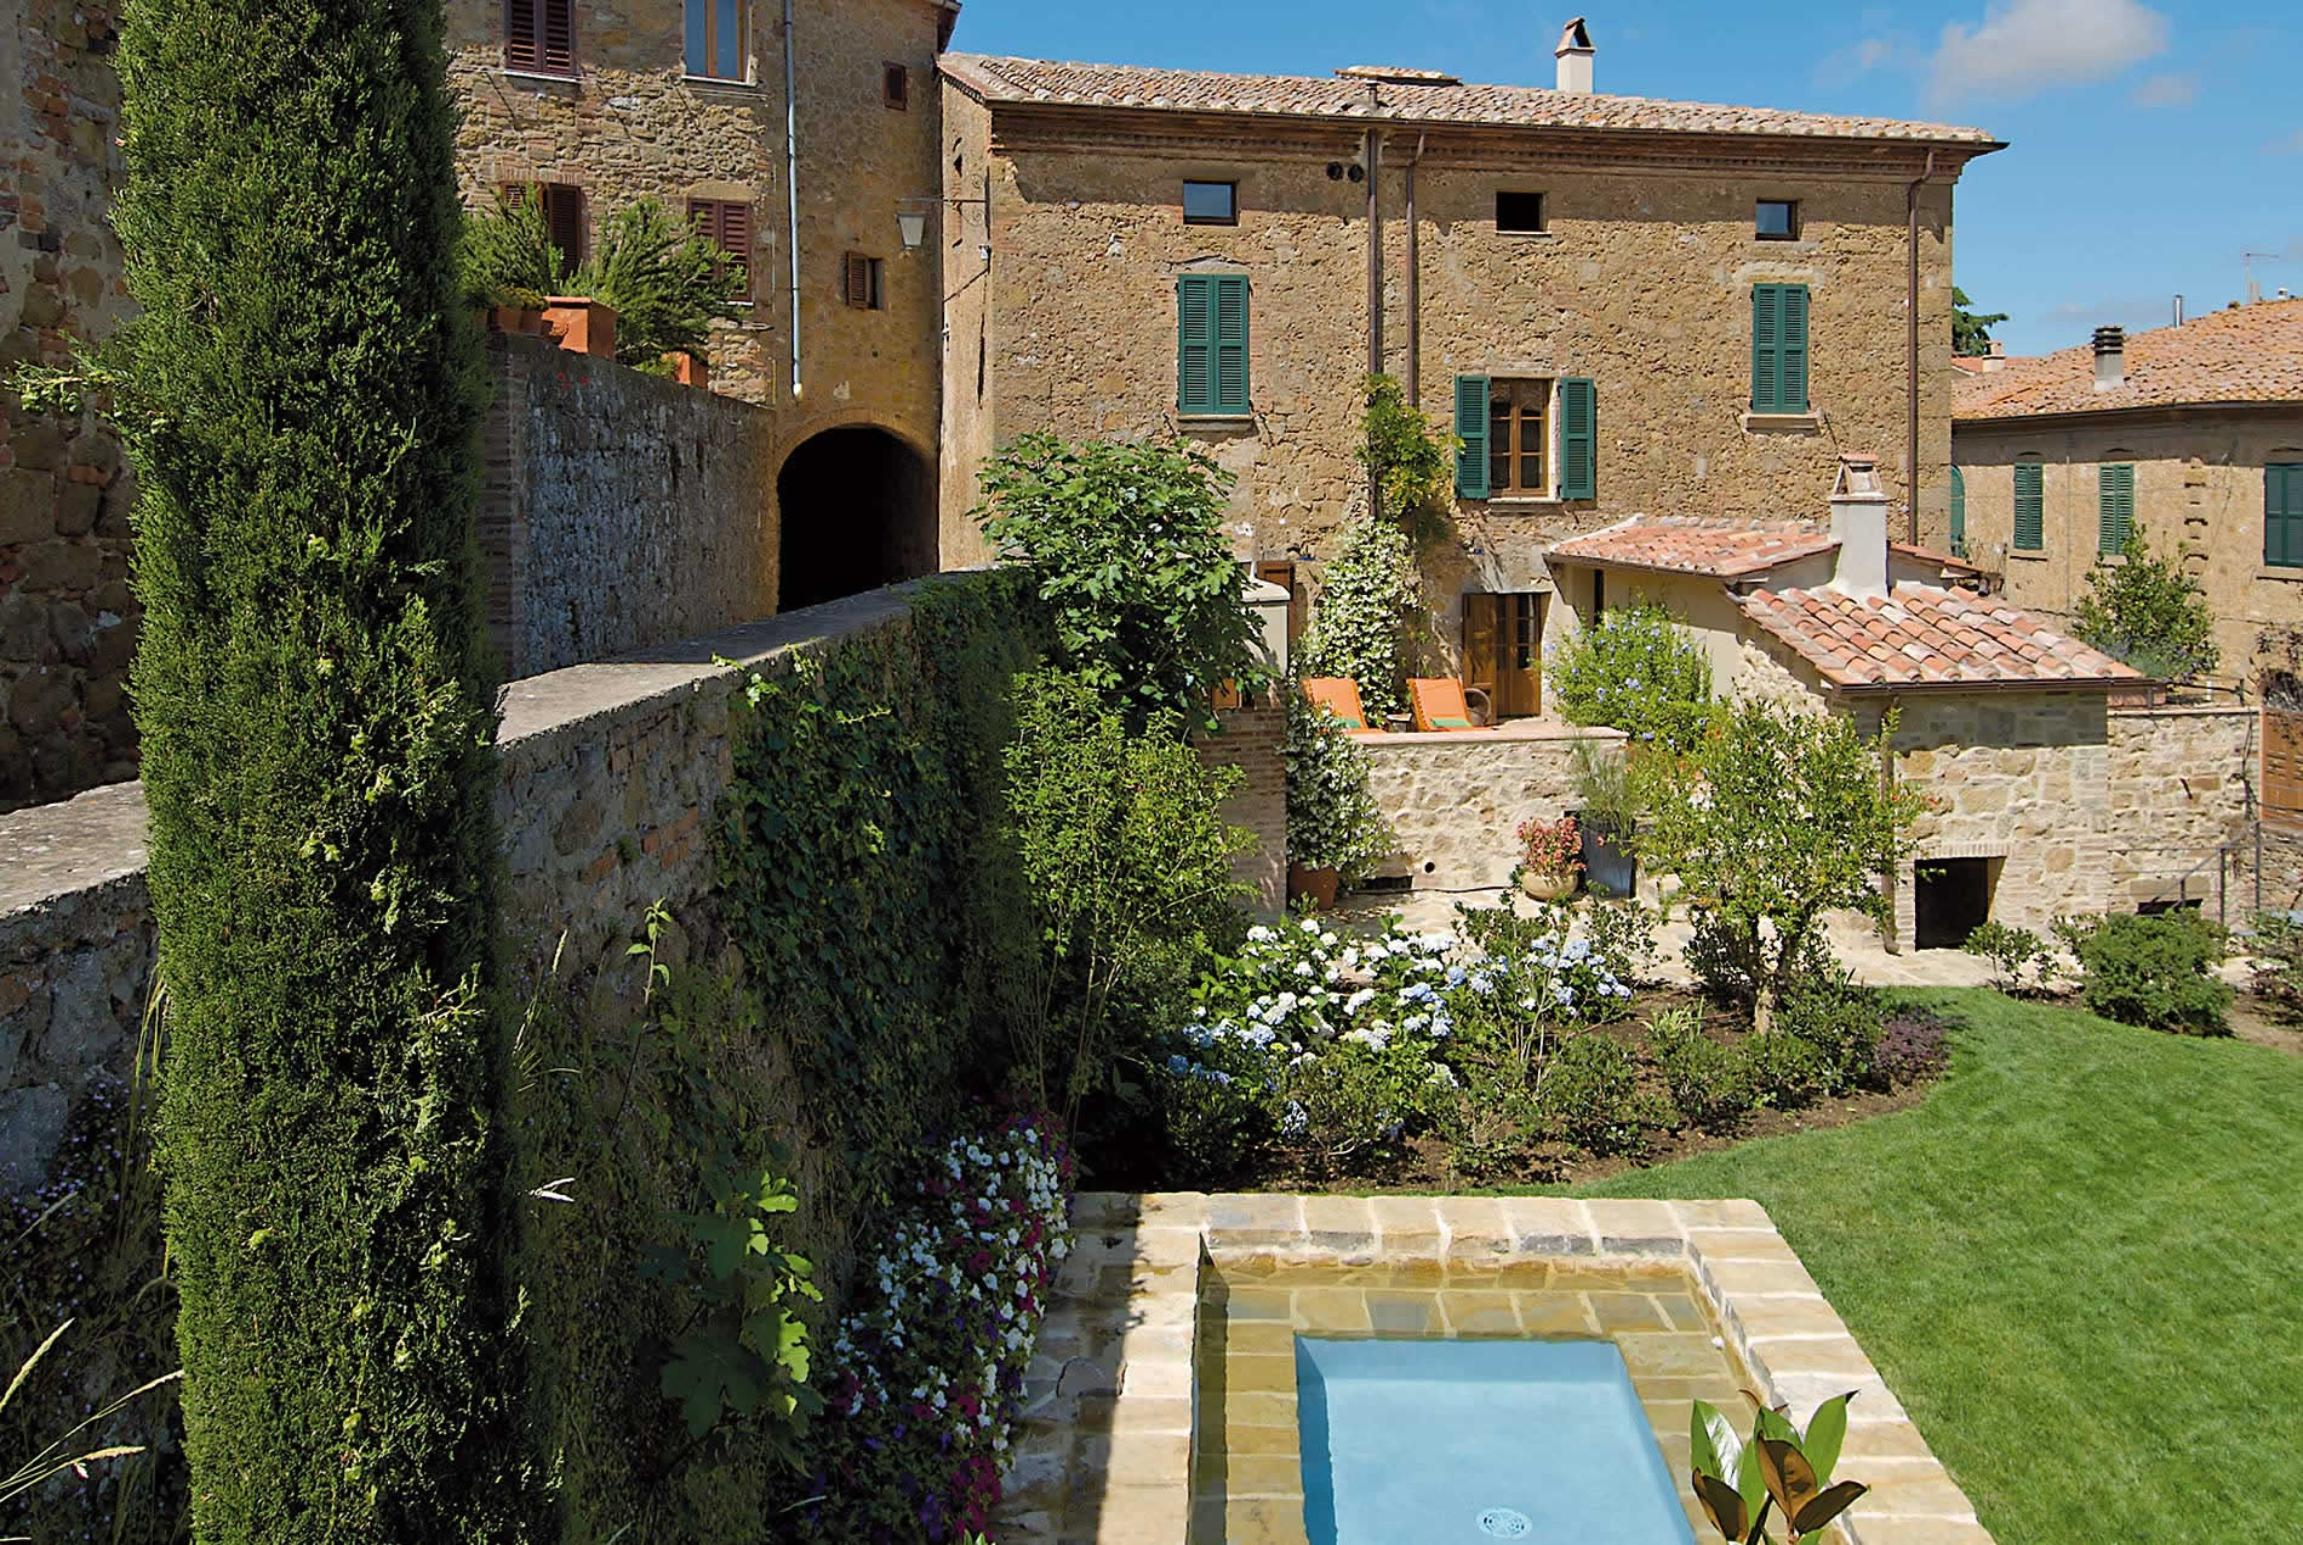 Read more about La Residenza villa